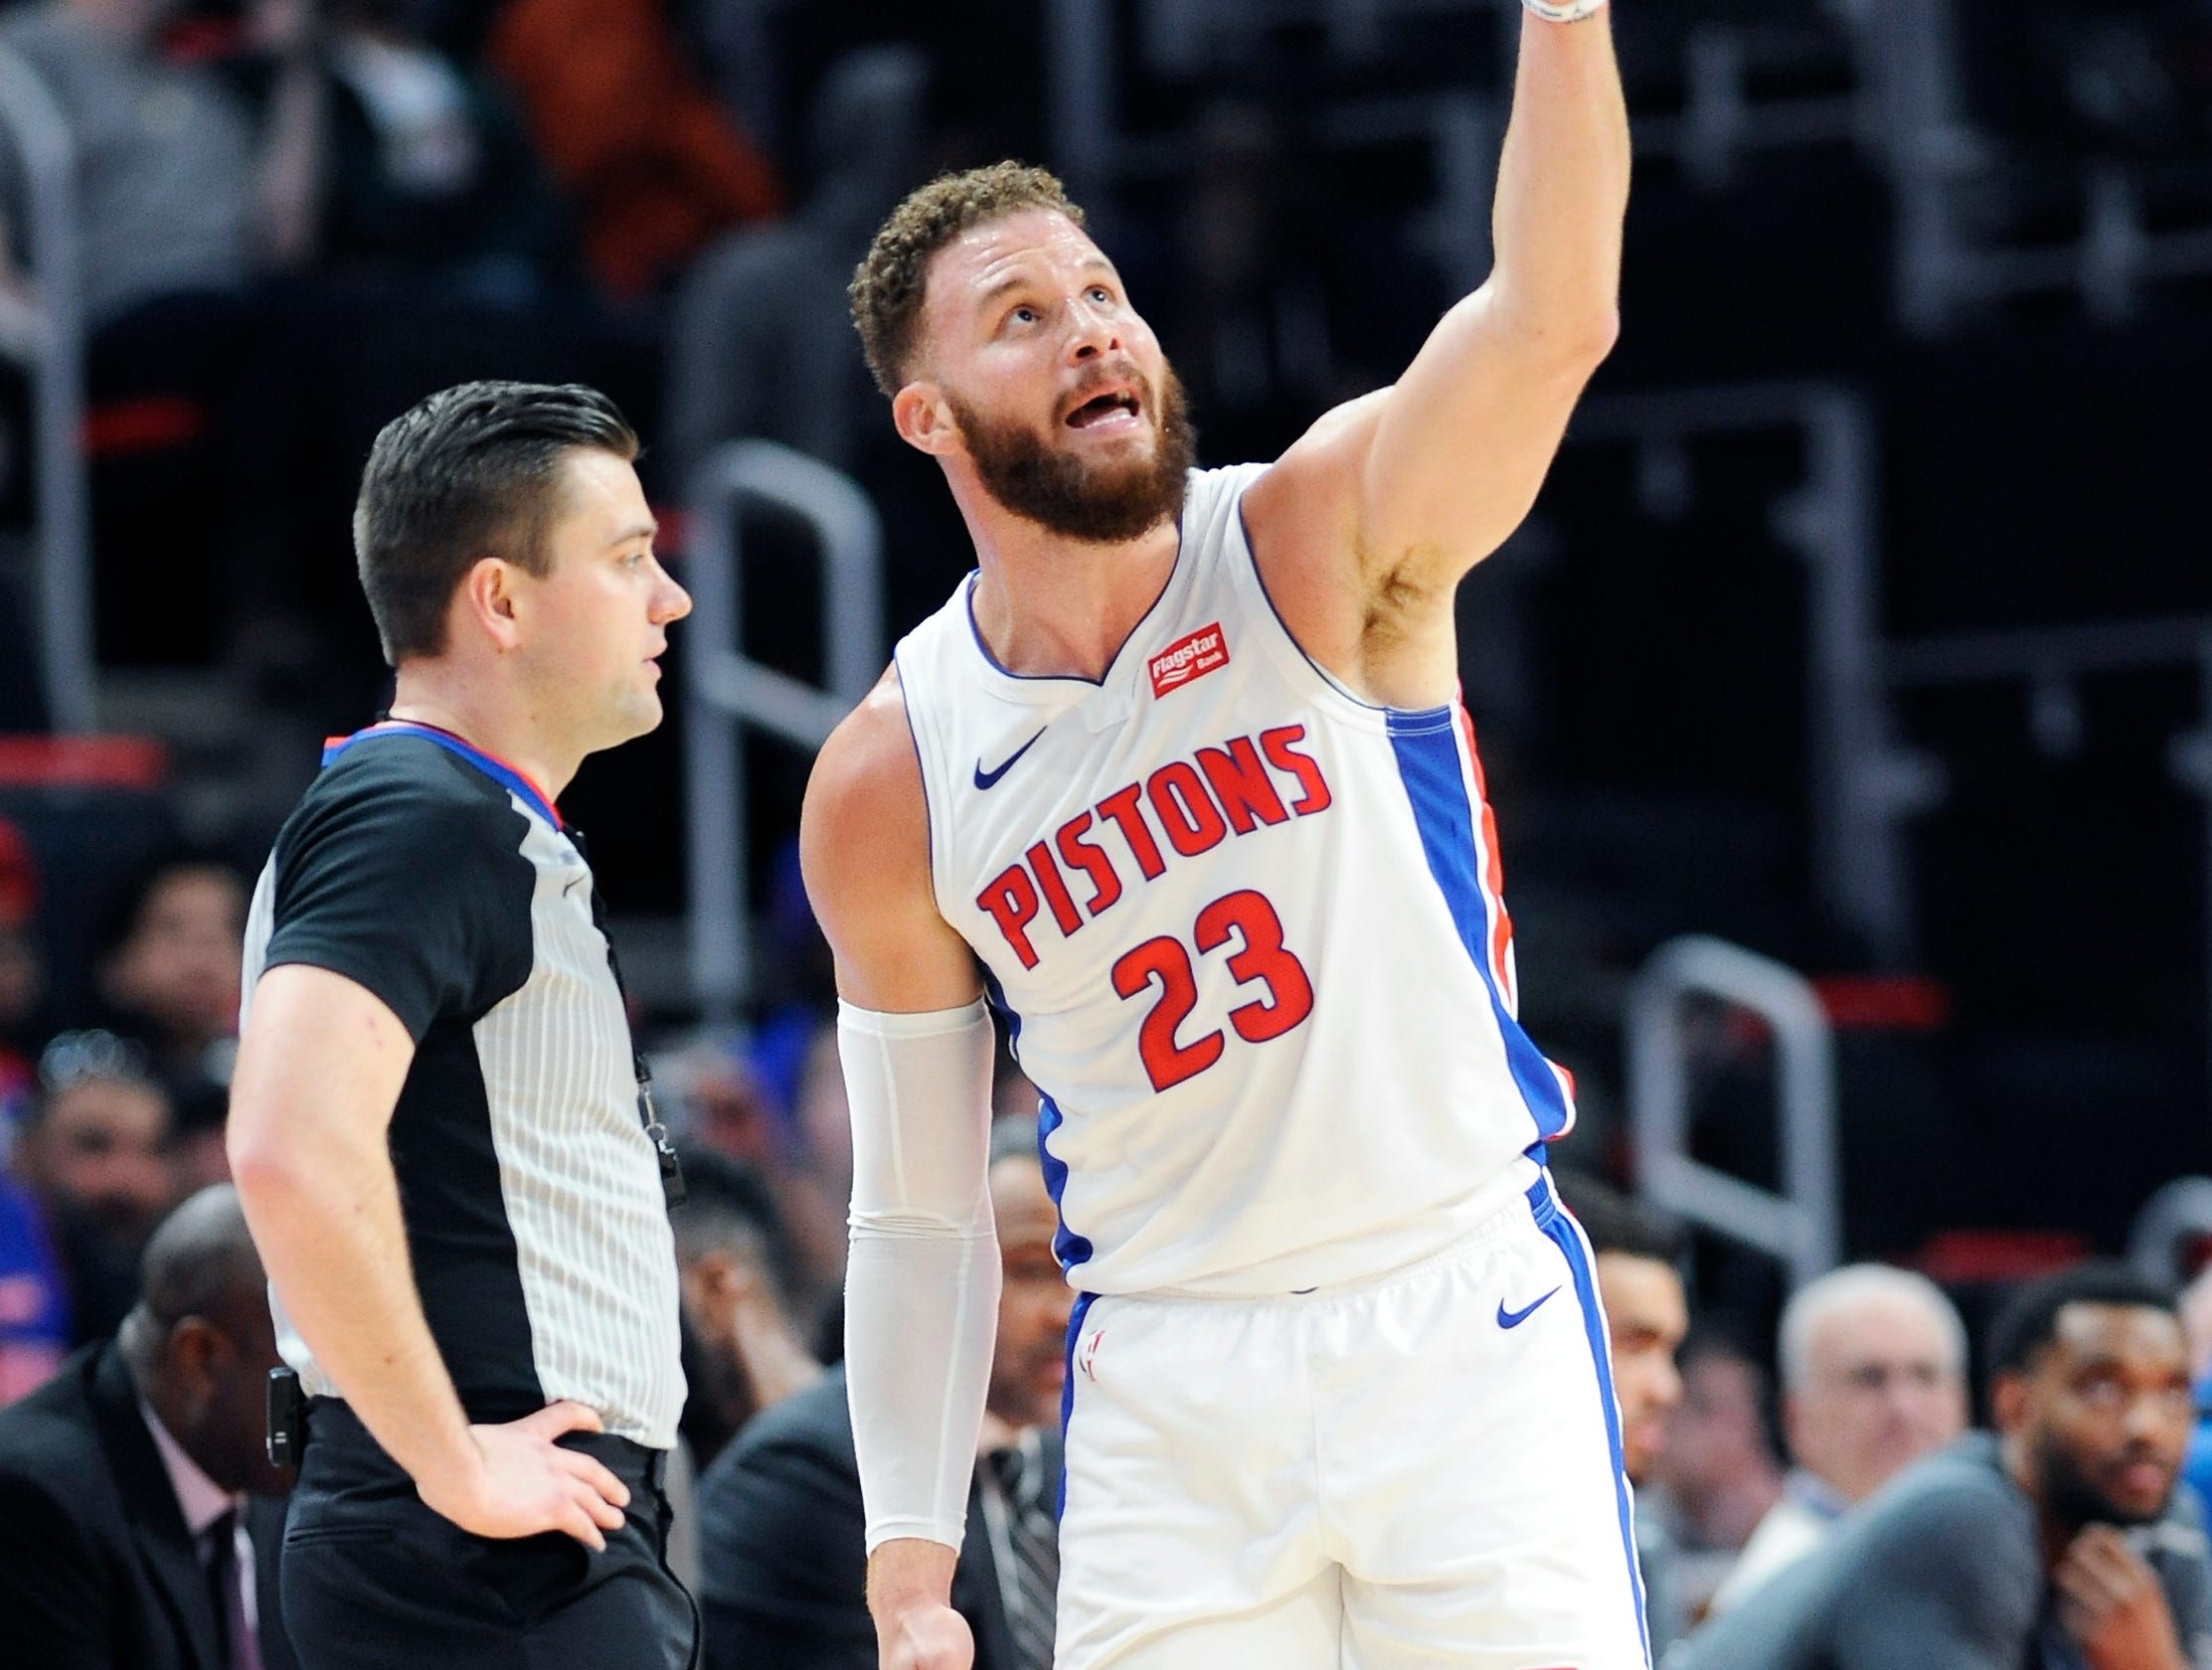 Pistons' Blake Griffin argues a call with referee Gediminas Petraitis in the first quarter.